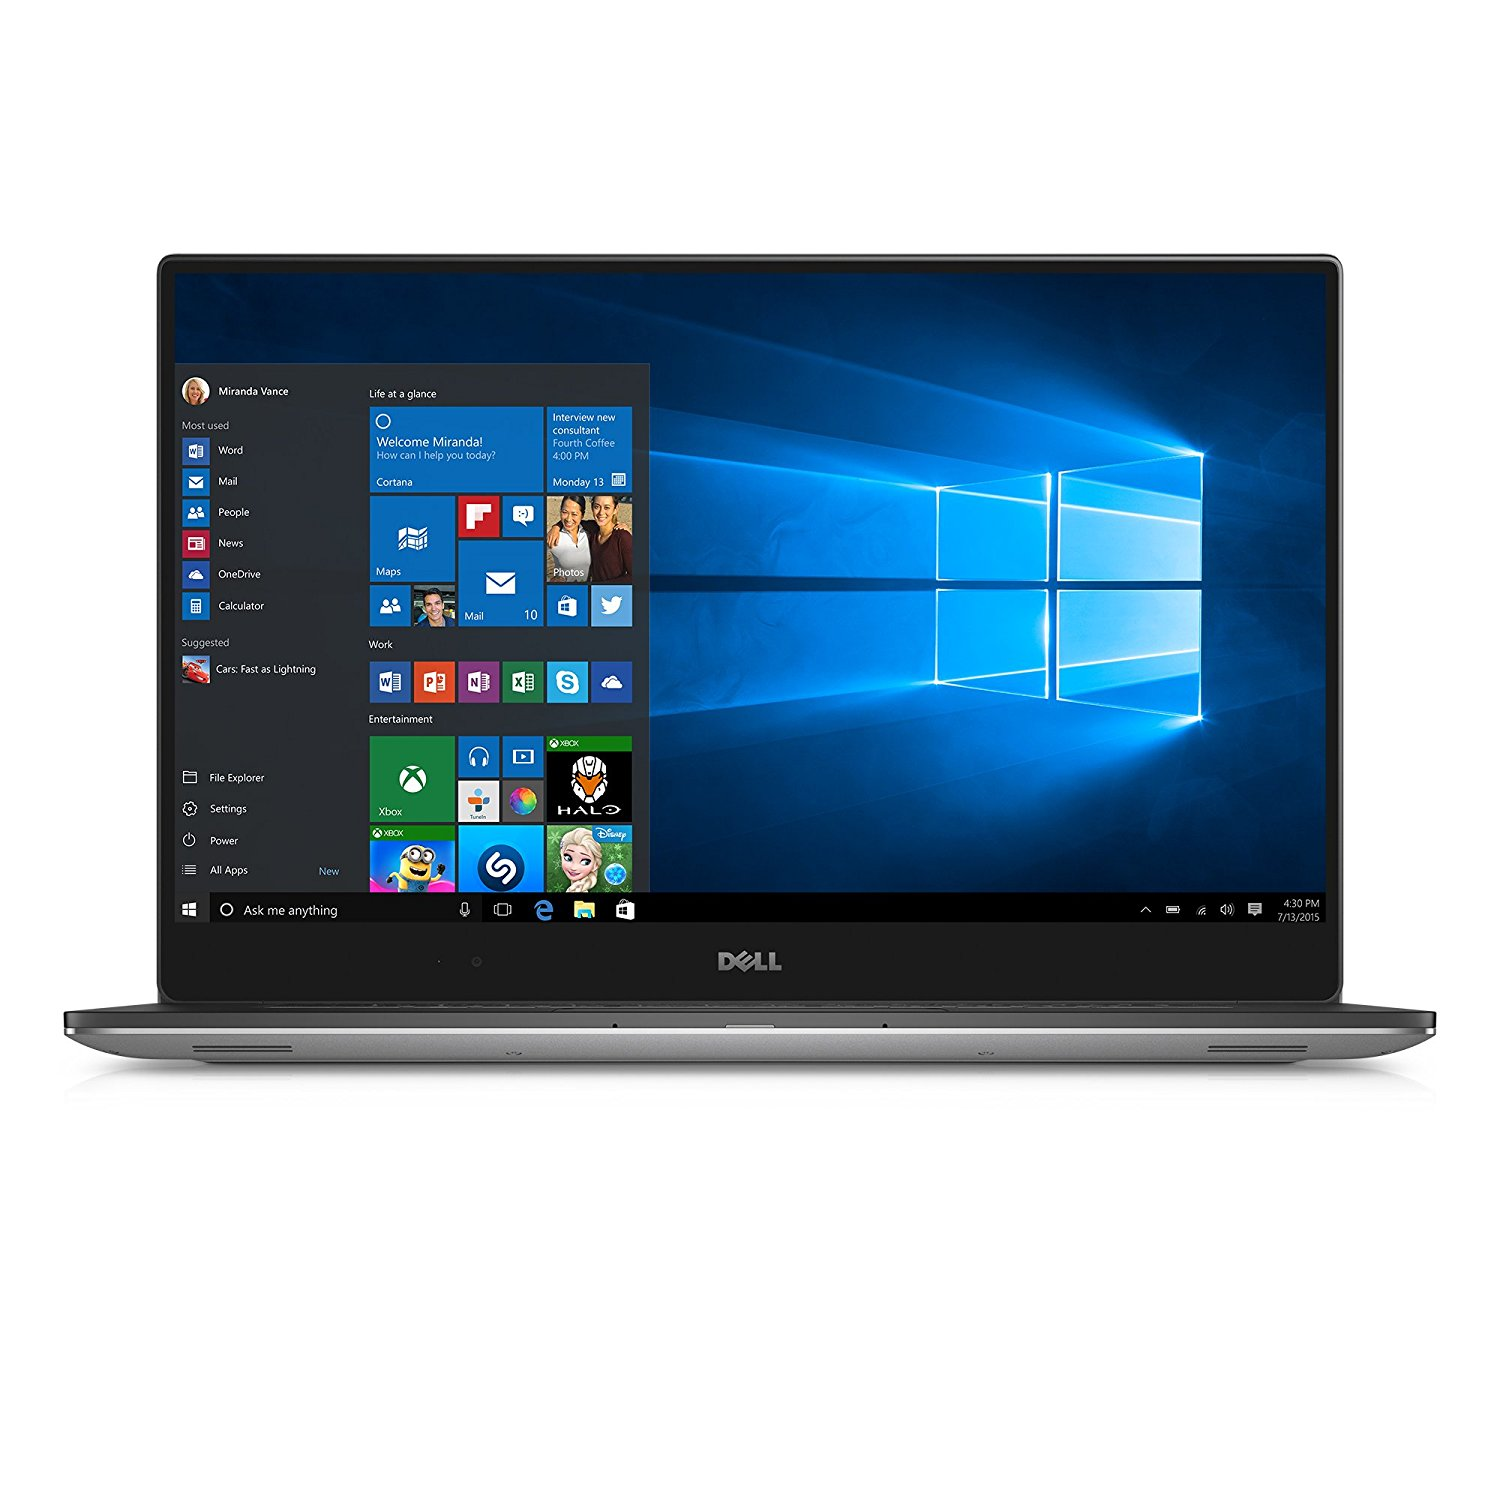 Notebook Dell XPS 15 9560 15.6 Full HD Intel Core i7-7700HQ GTX 1050-4GB RAM 16GB SSD 512GB Windows 10 Pro Argintiu